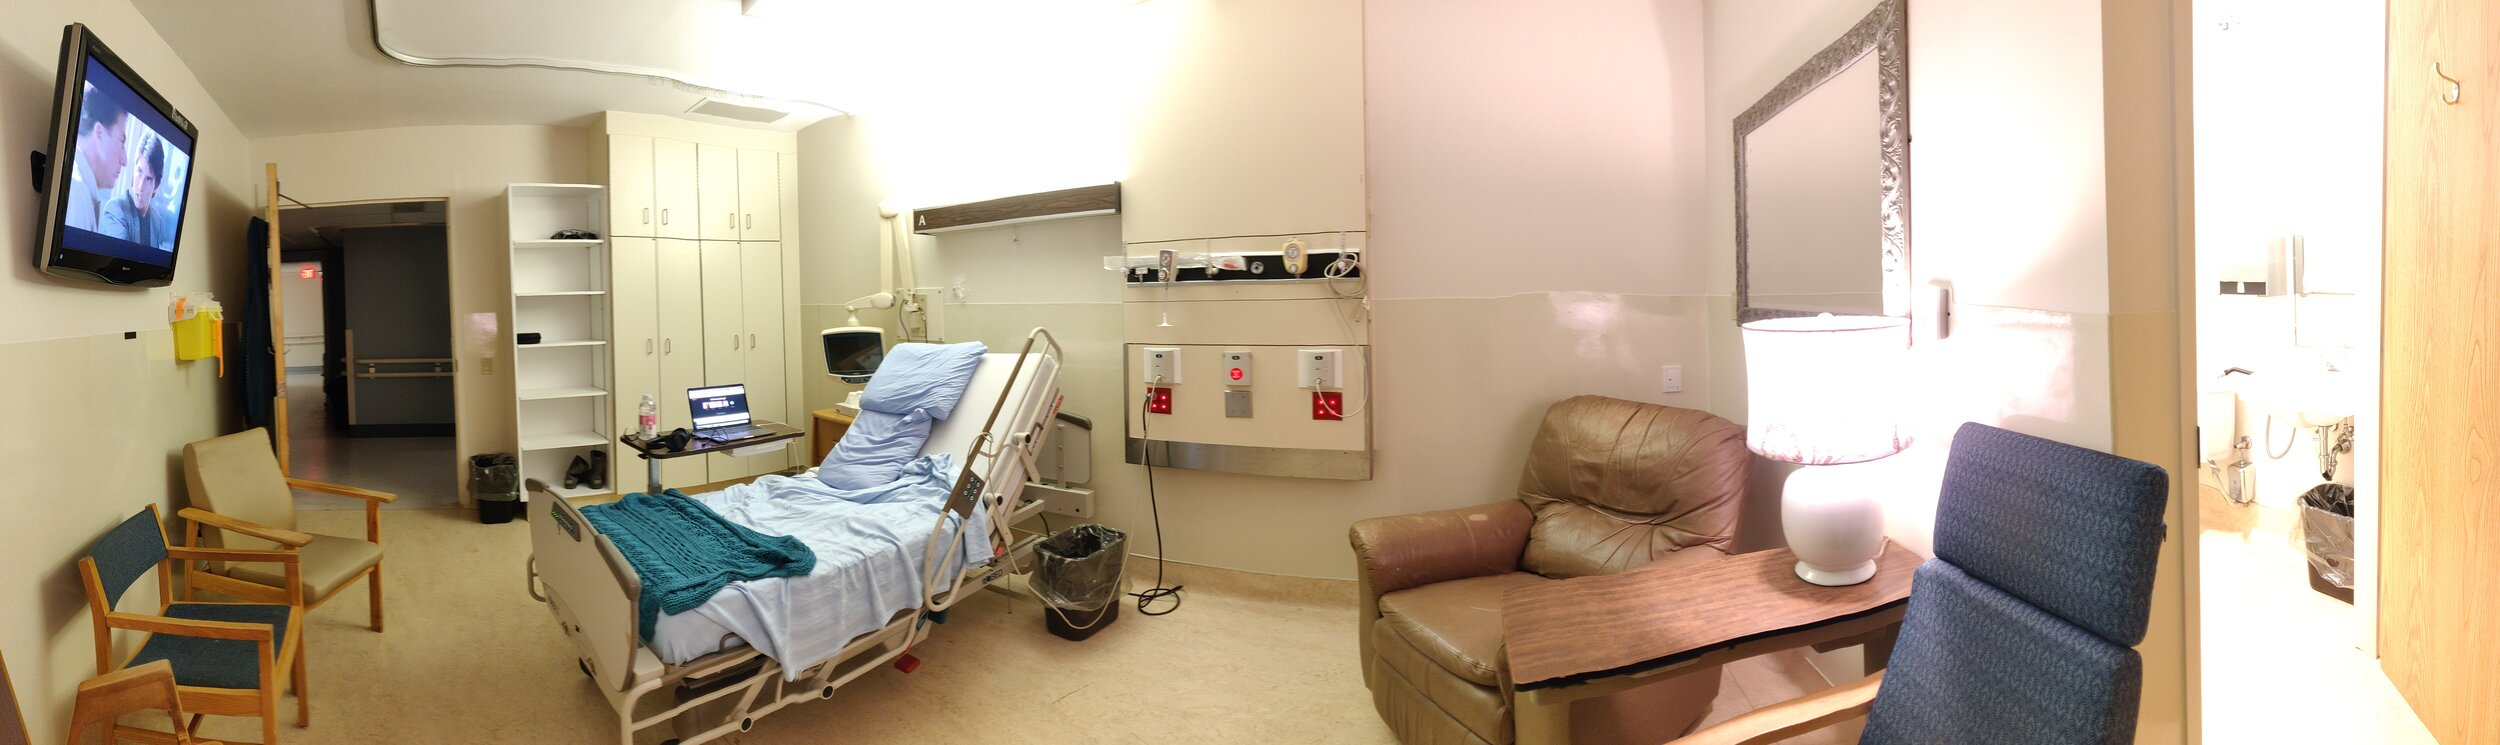 My private room @ Moncton Hospital